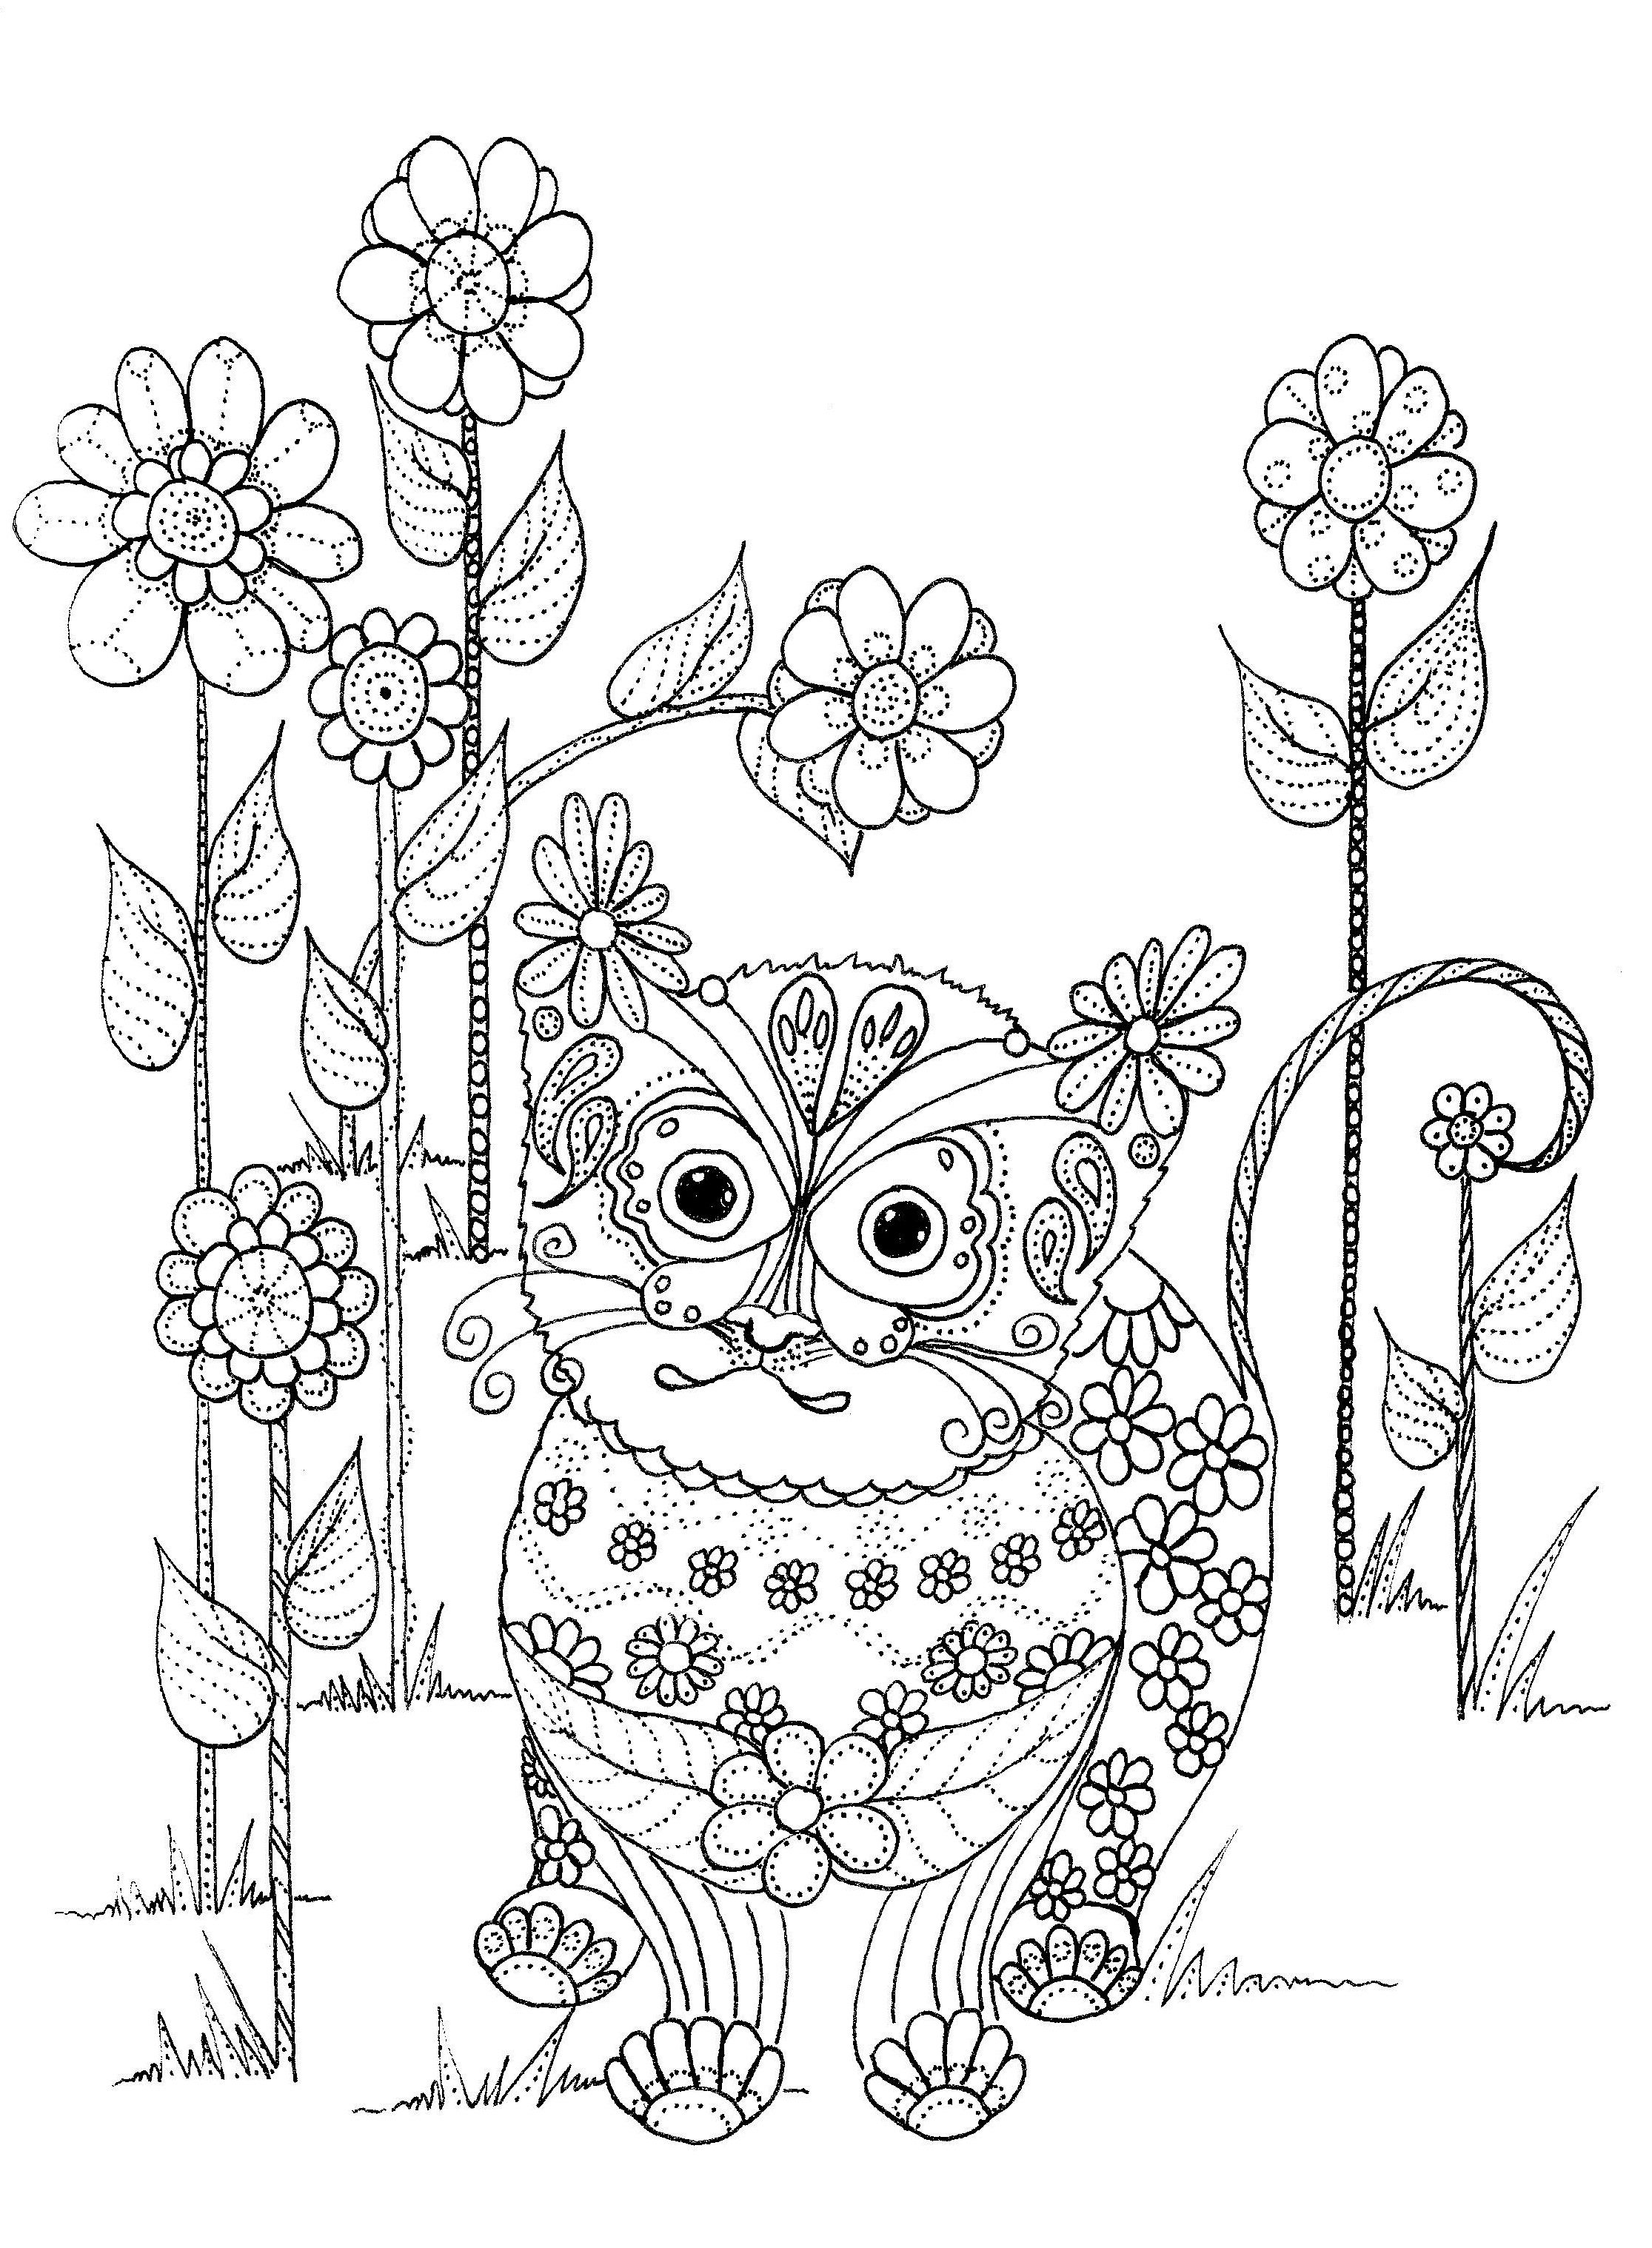 Kitten And Flowers Coloring Page Dog Coloring Page Dog Coloring Book Cat Coloring Page